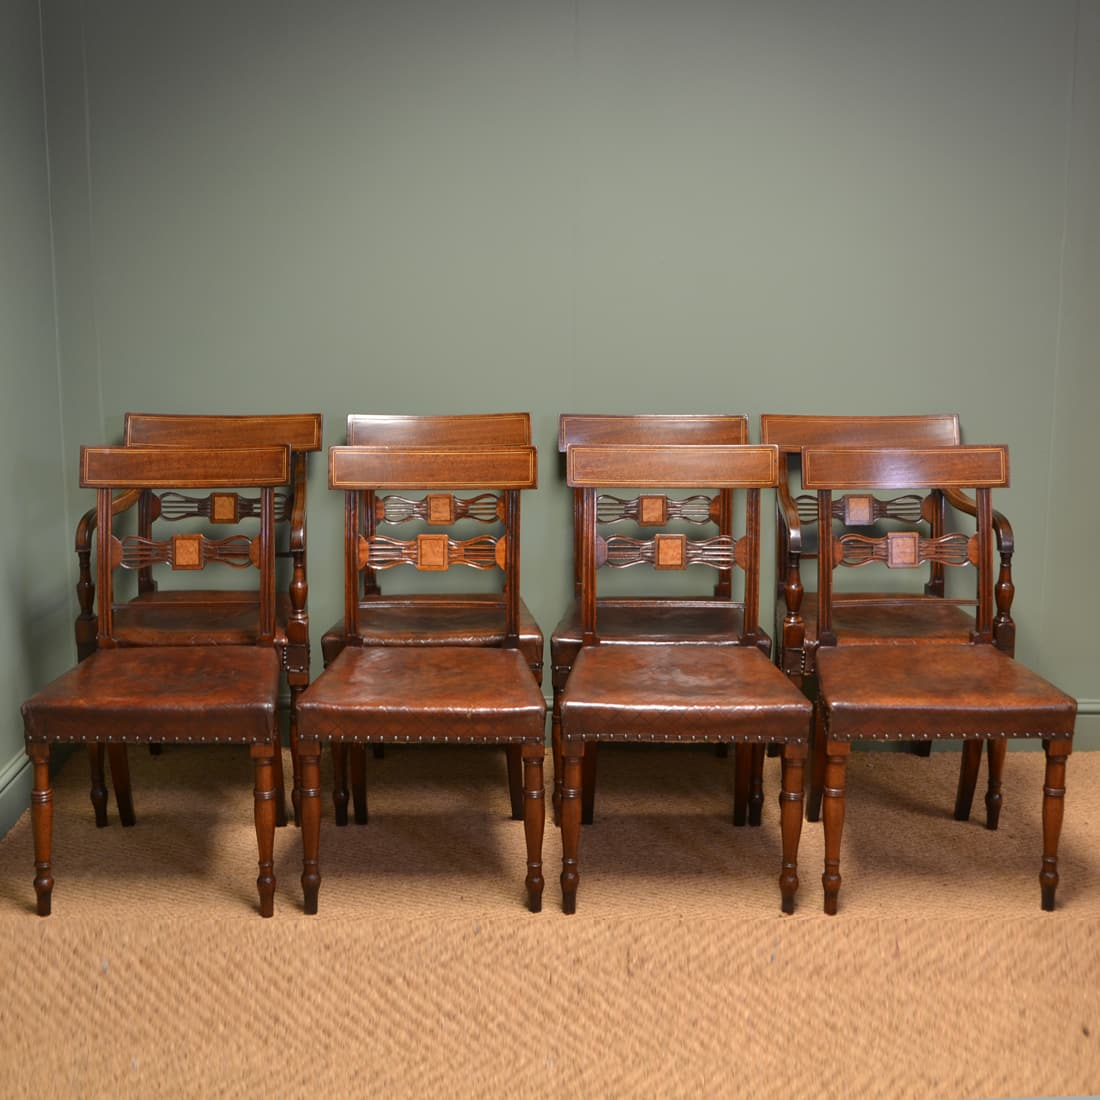 Striking Set Of Eight Regency Antique Mahogany Dining Chairs Antiques World